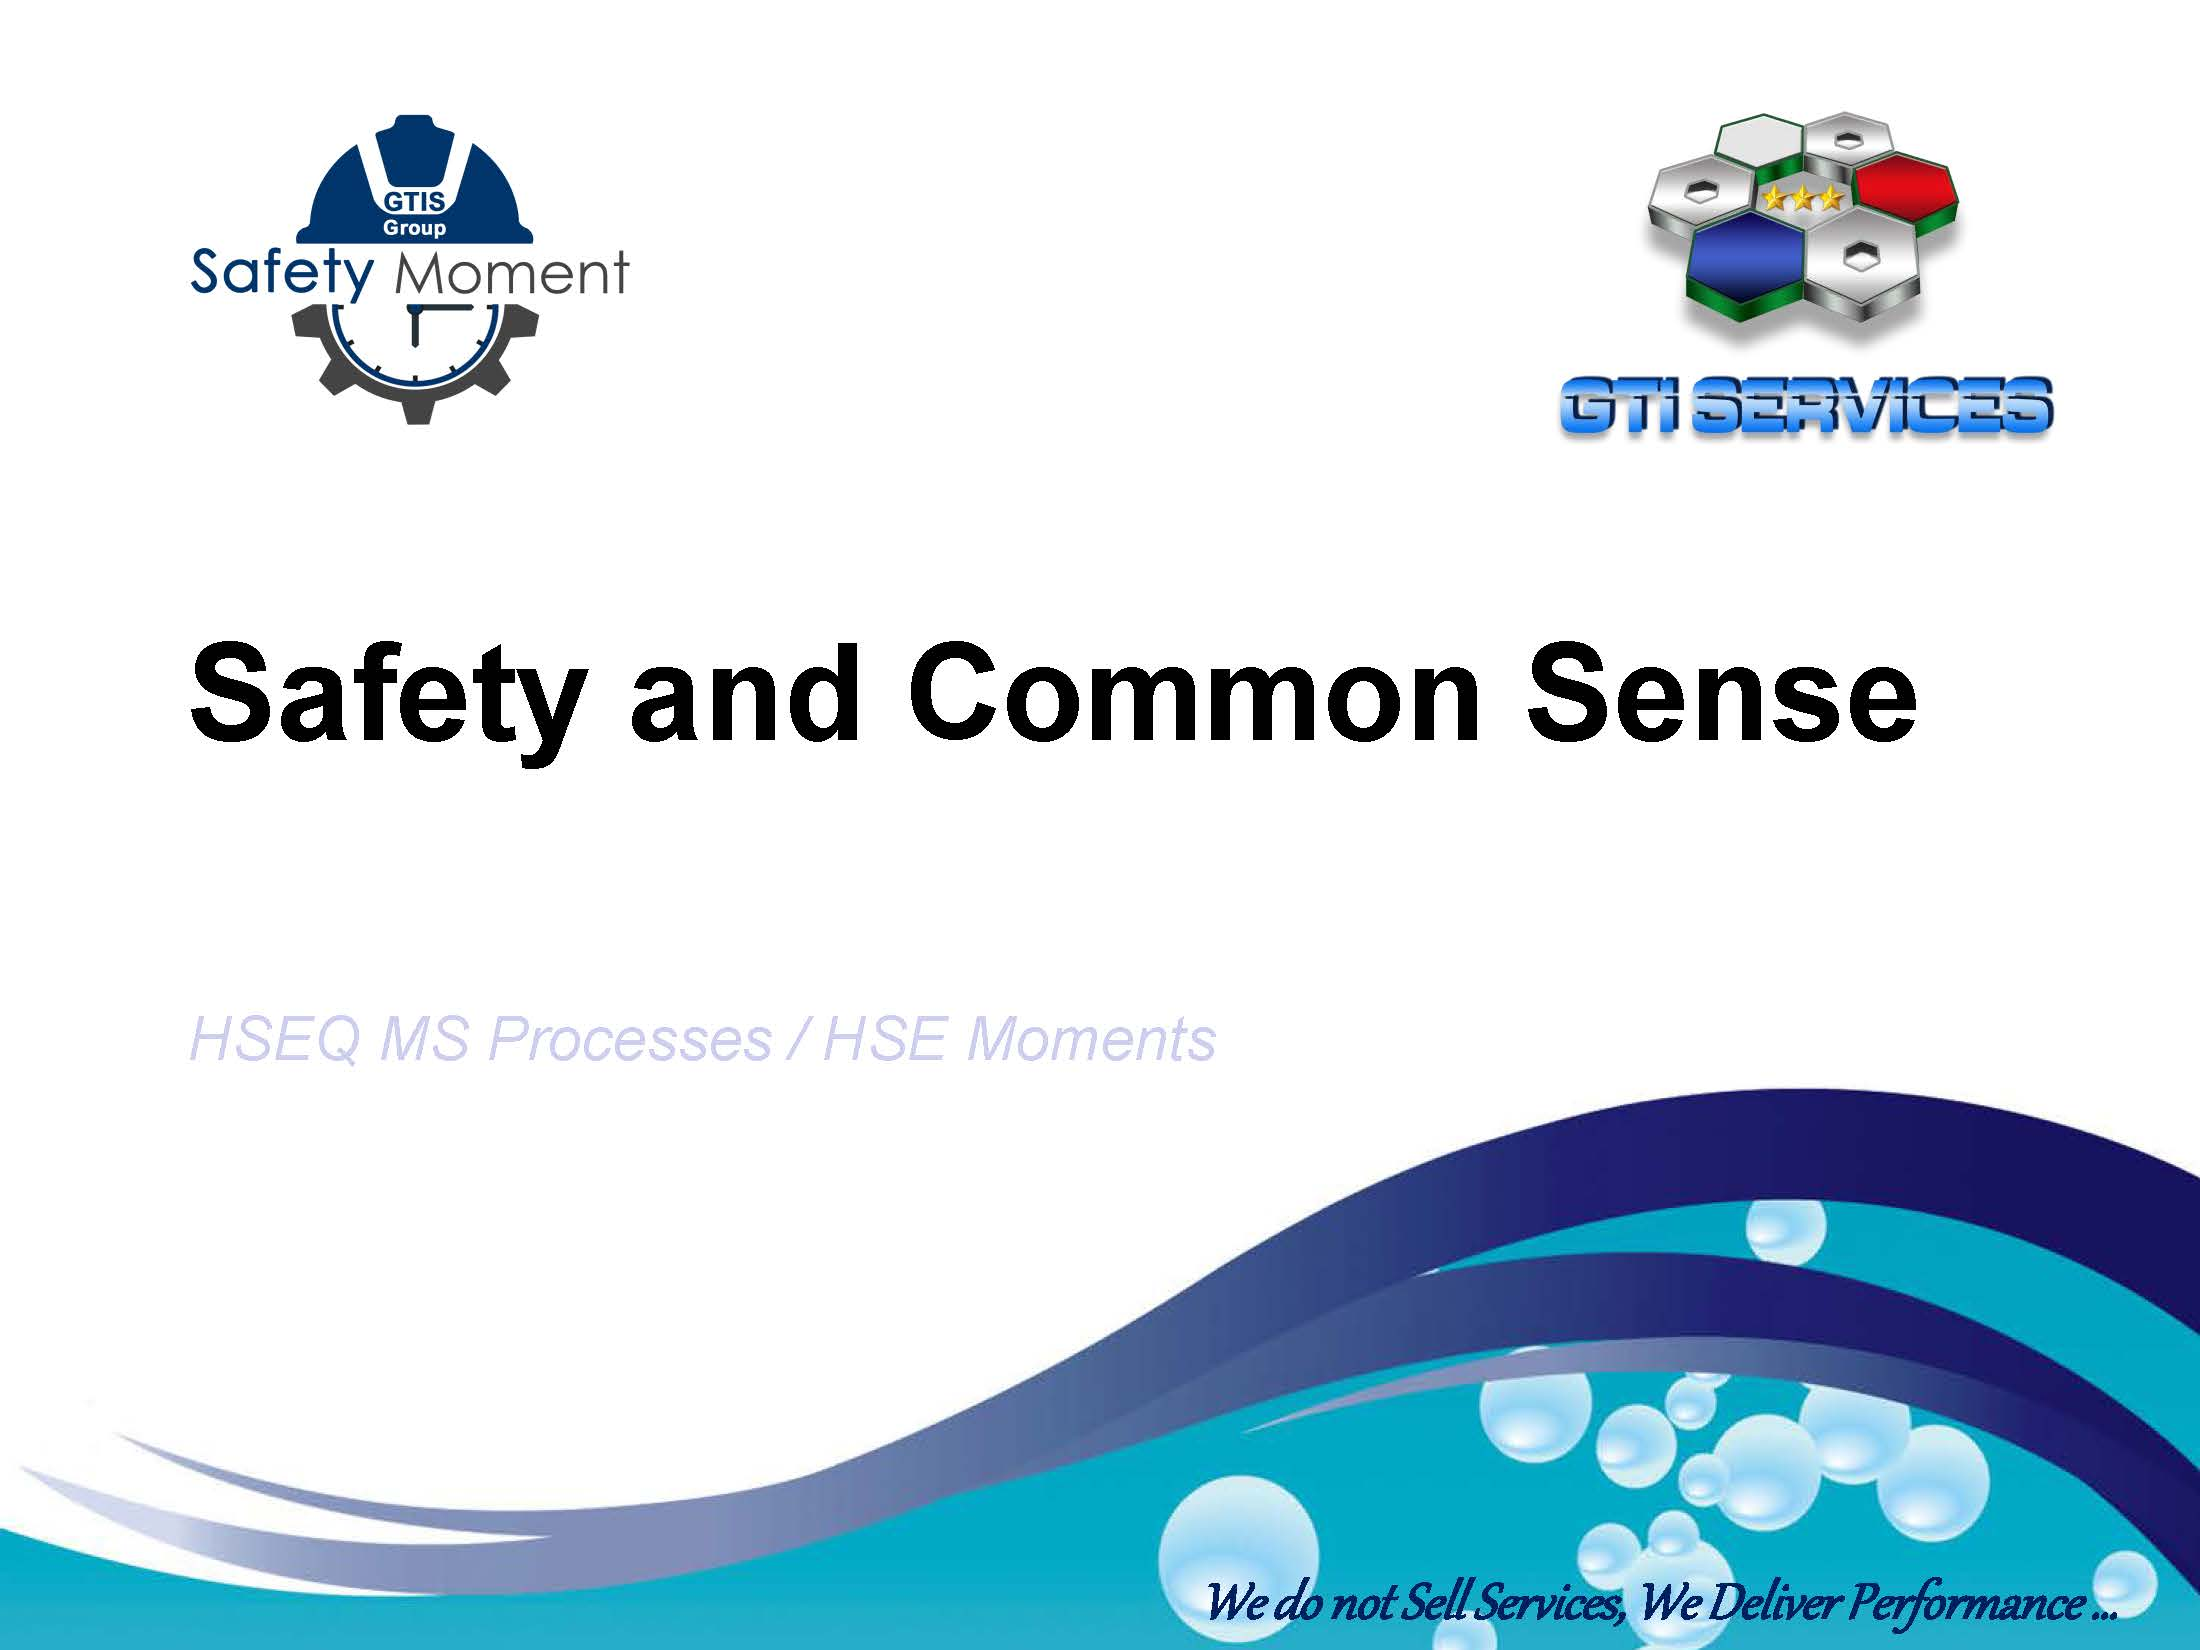 20191122 - Safety Moment - Safety and Common Sense_Page_1